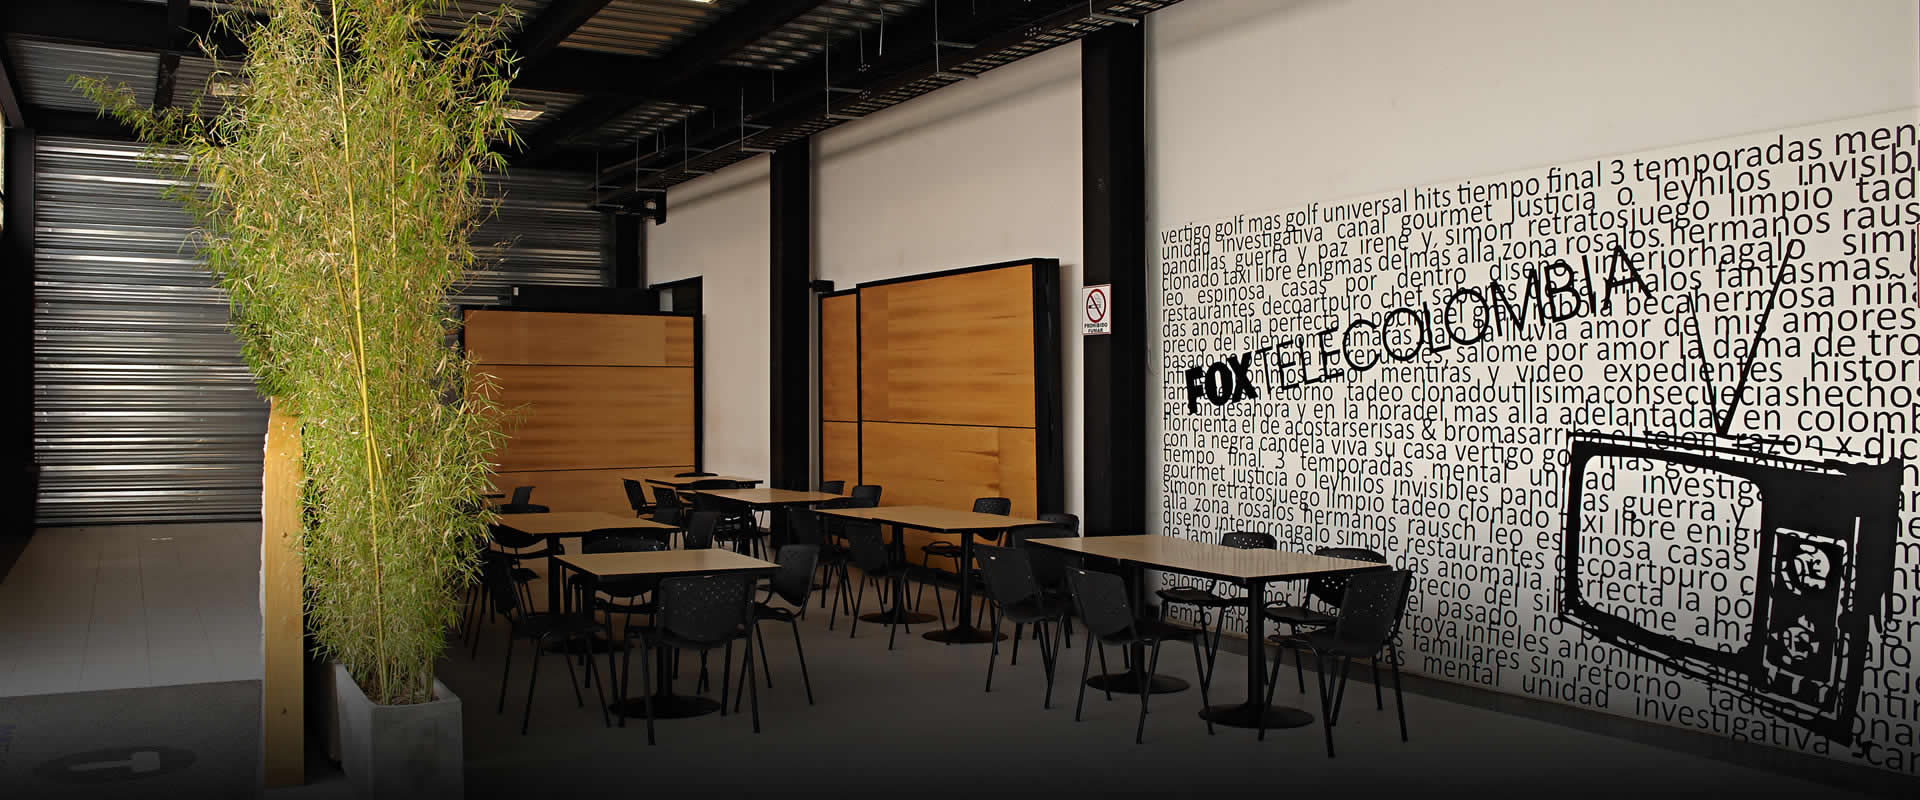 Zona cafeteria FOXTelecolombia